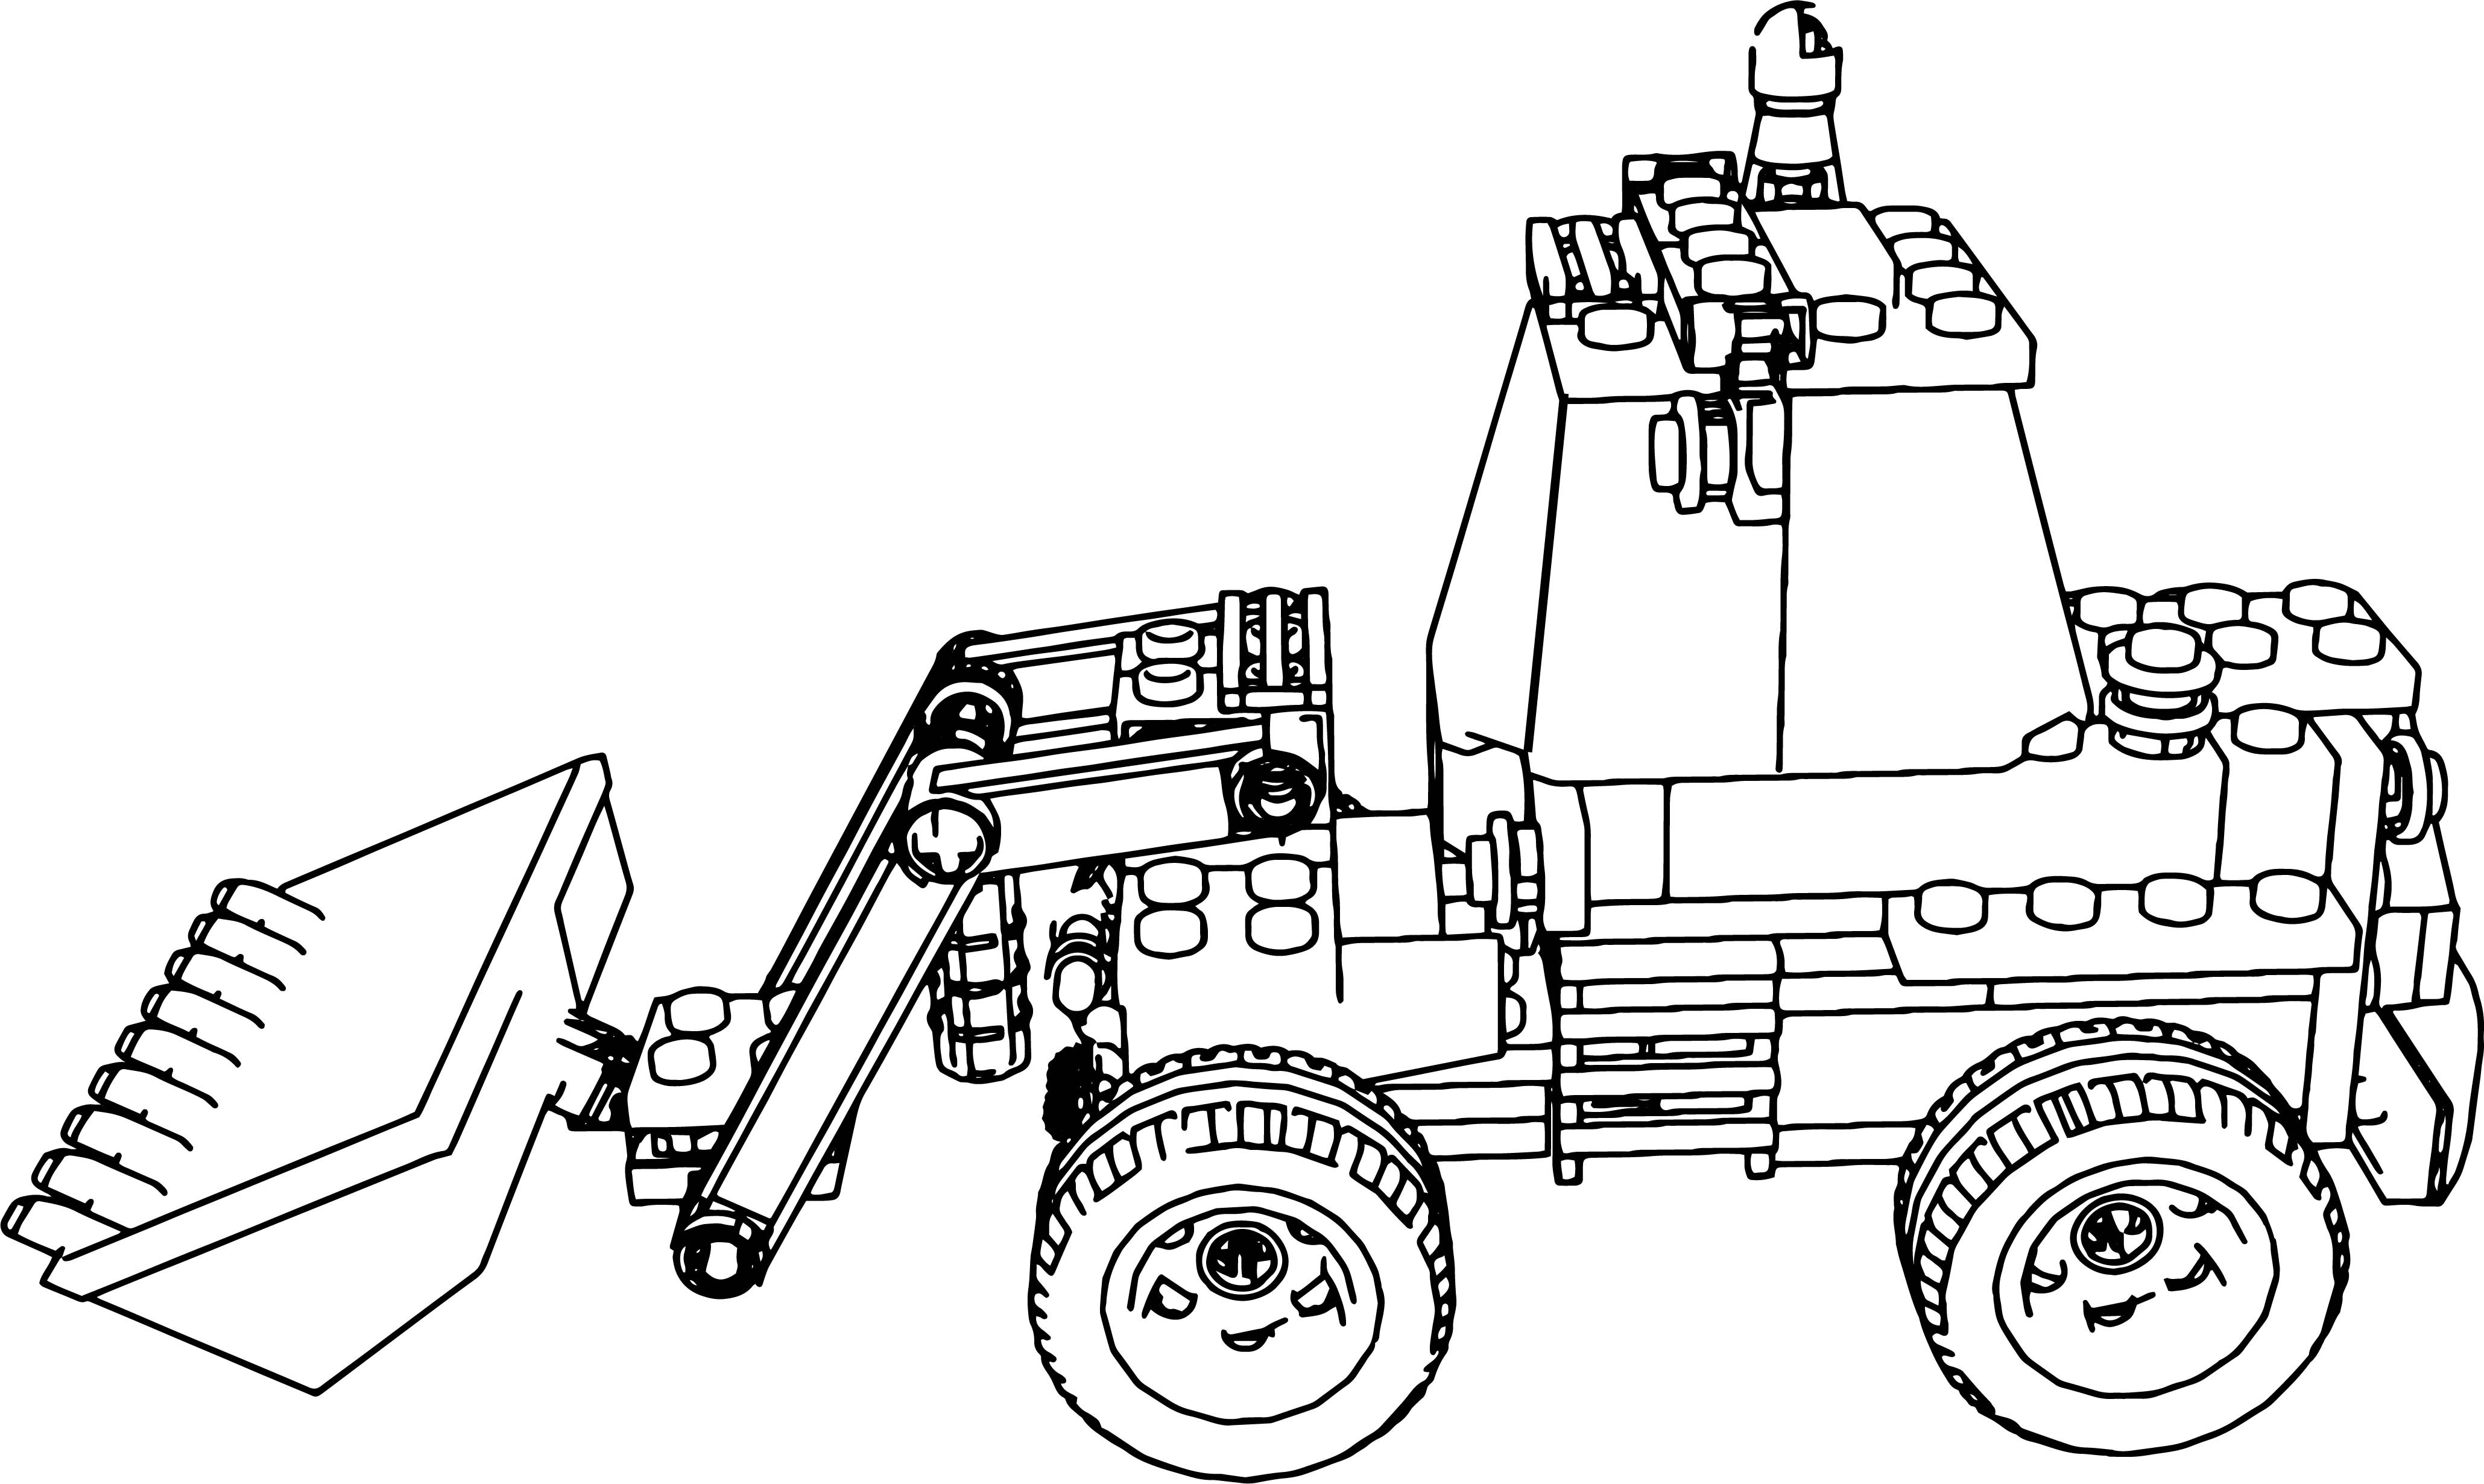 4119x2461 Lego Truck Coloring Page For Kids Inspirational Lego Excavator